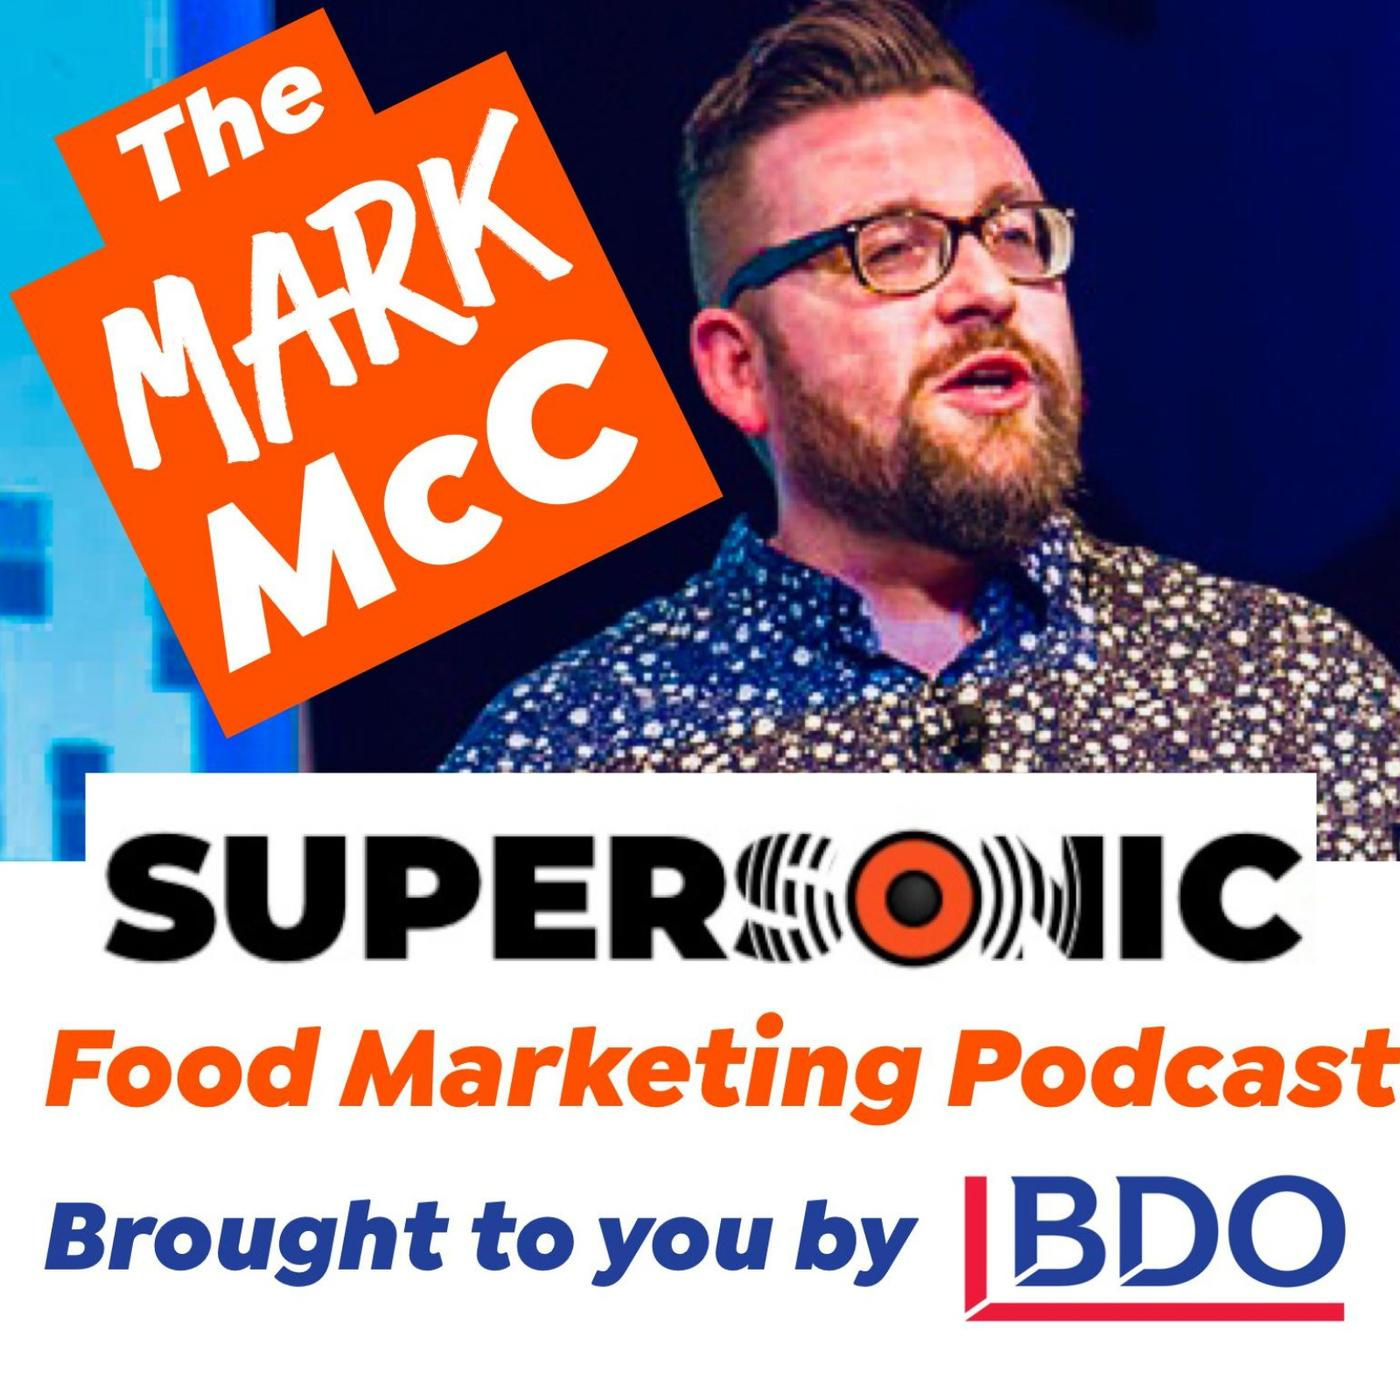 The Mark McC Supersonic Food Marketing Podcast brought to